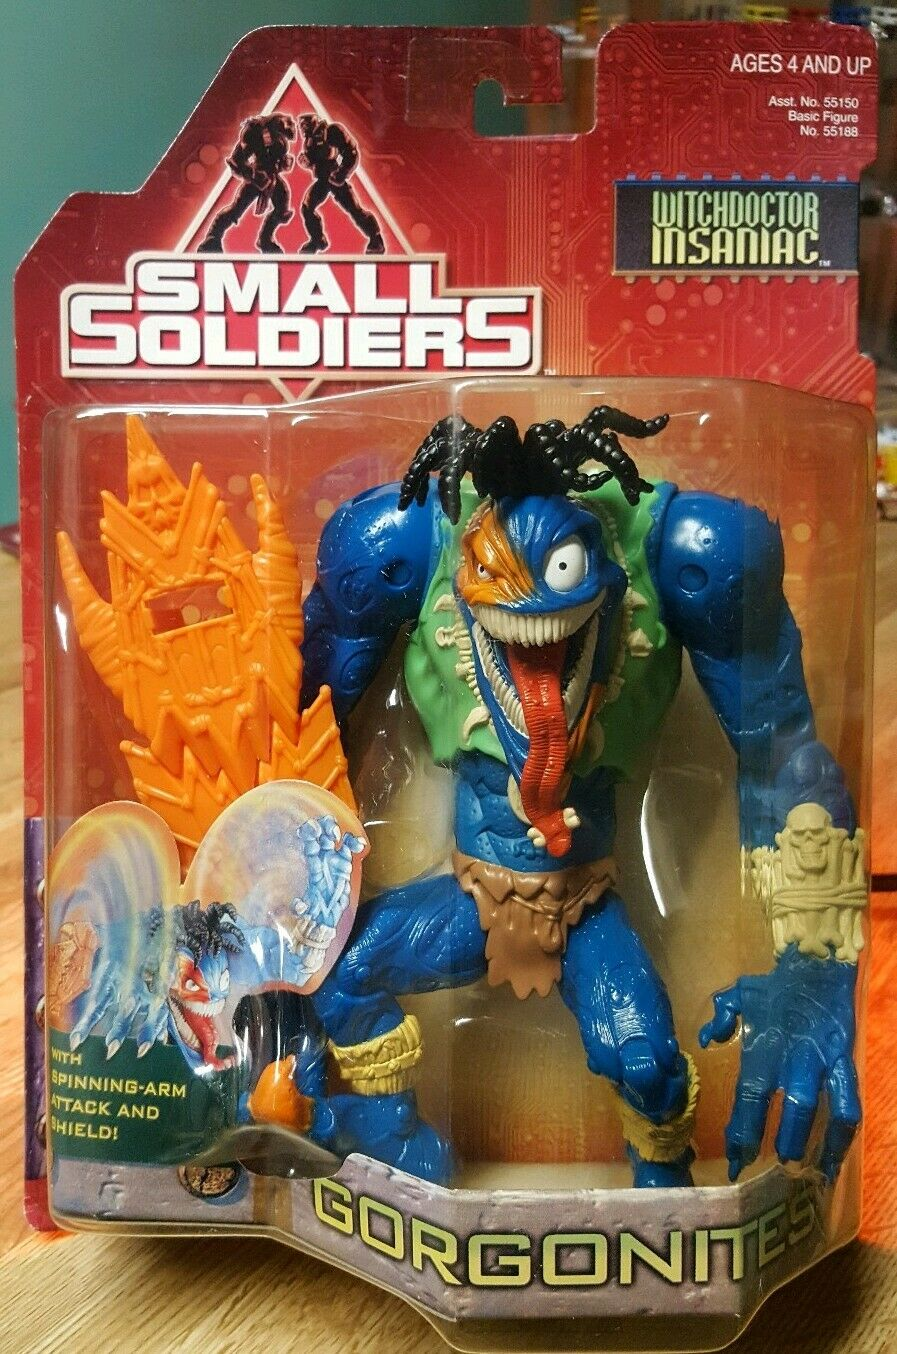 Small Soldiers Insaniac Witchdoctor Insaniac 7  Action Figure 1998 Kenner MIB